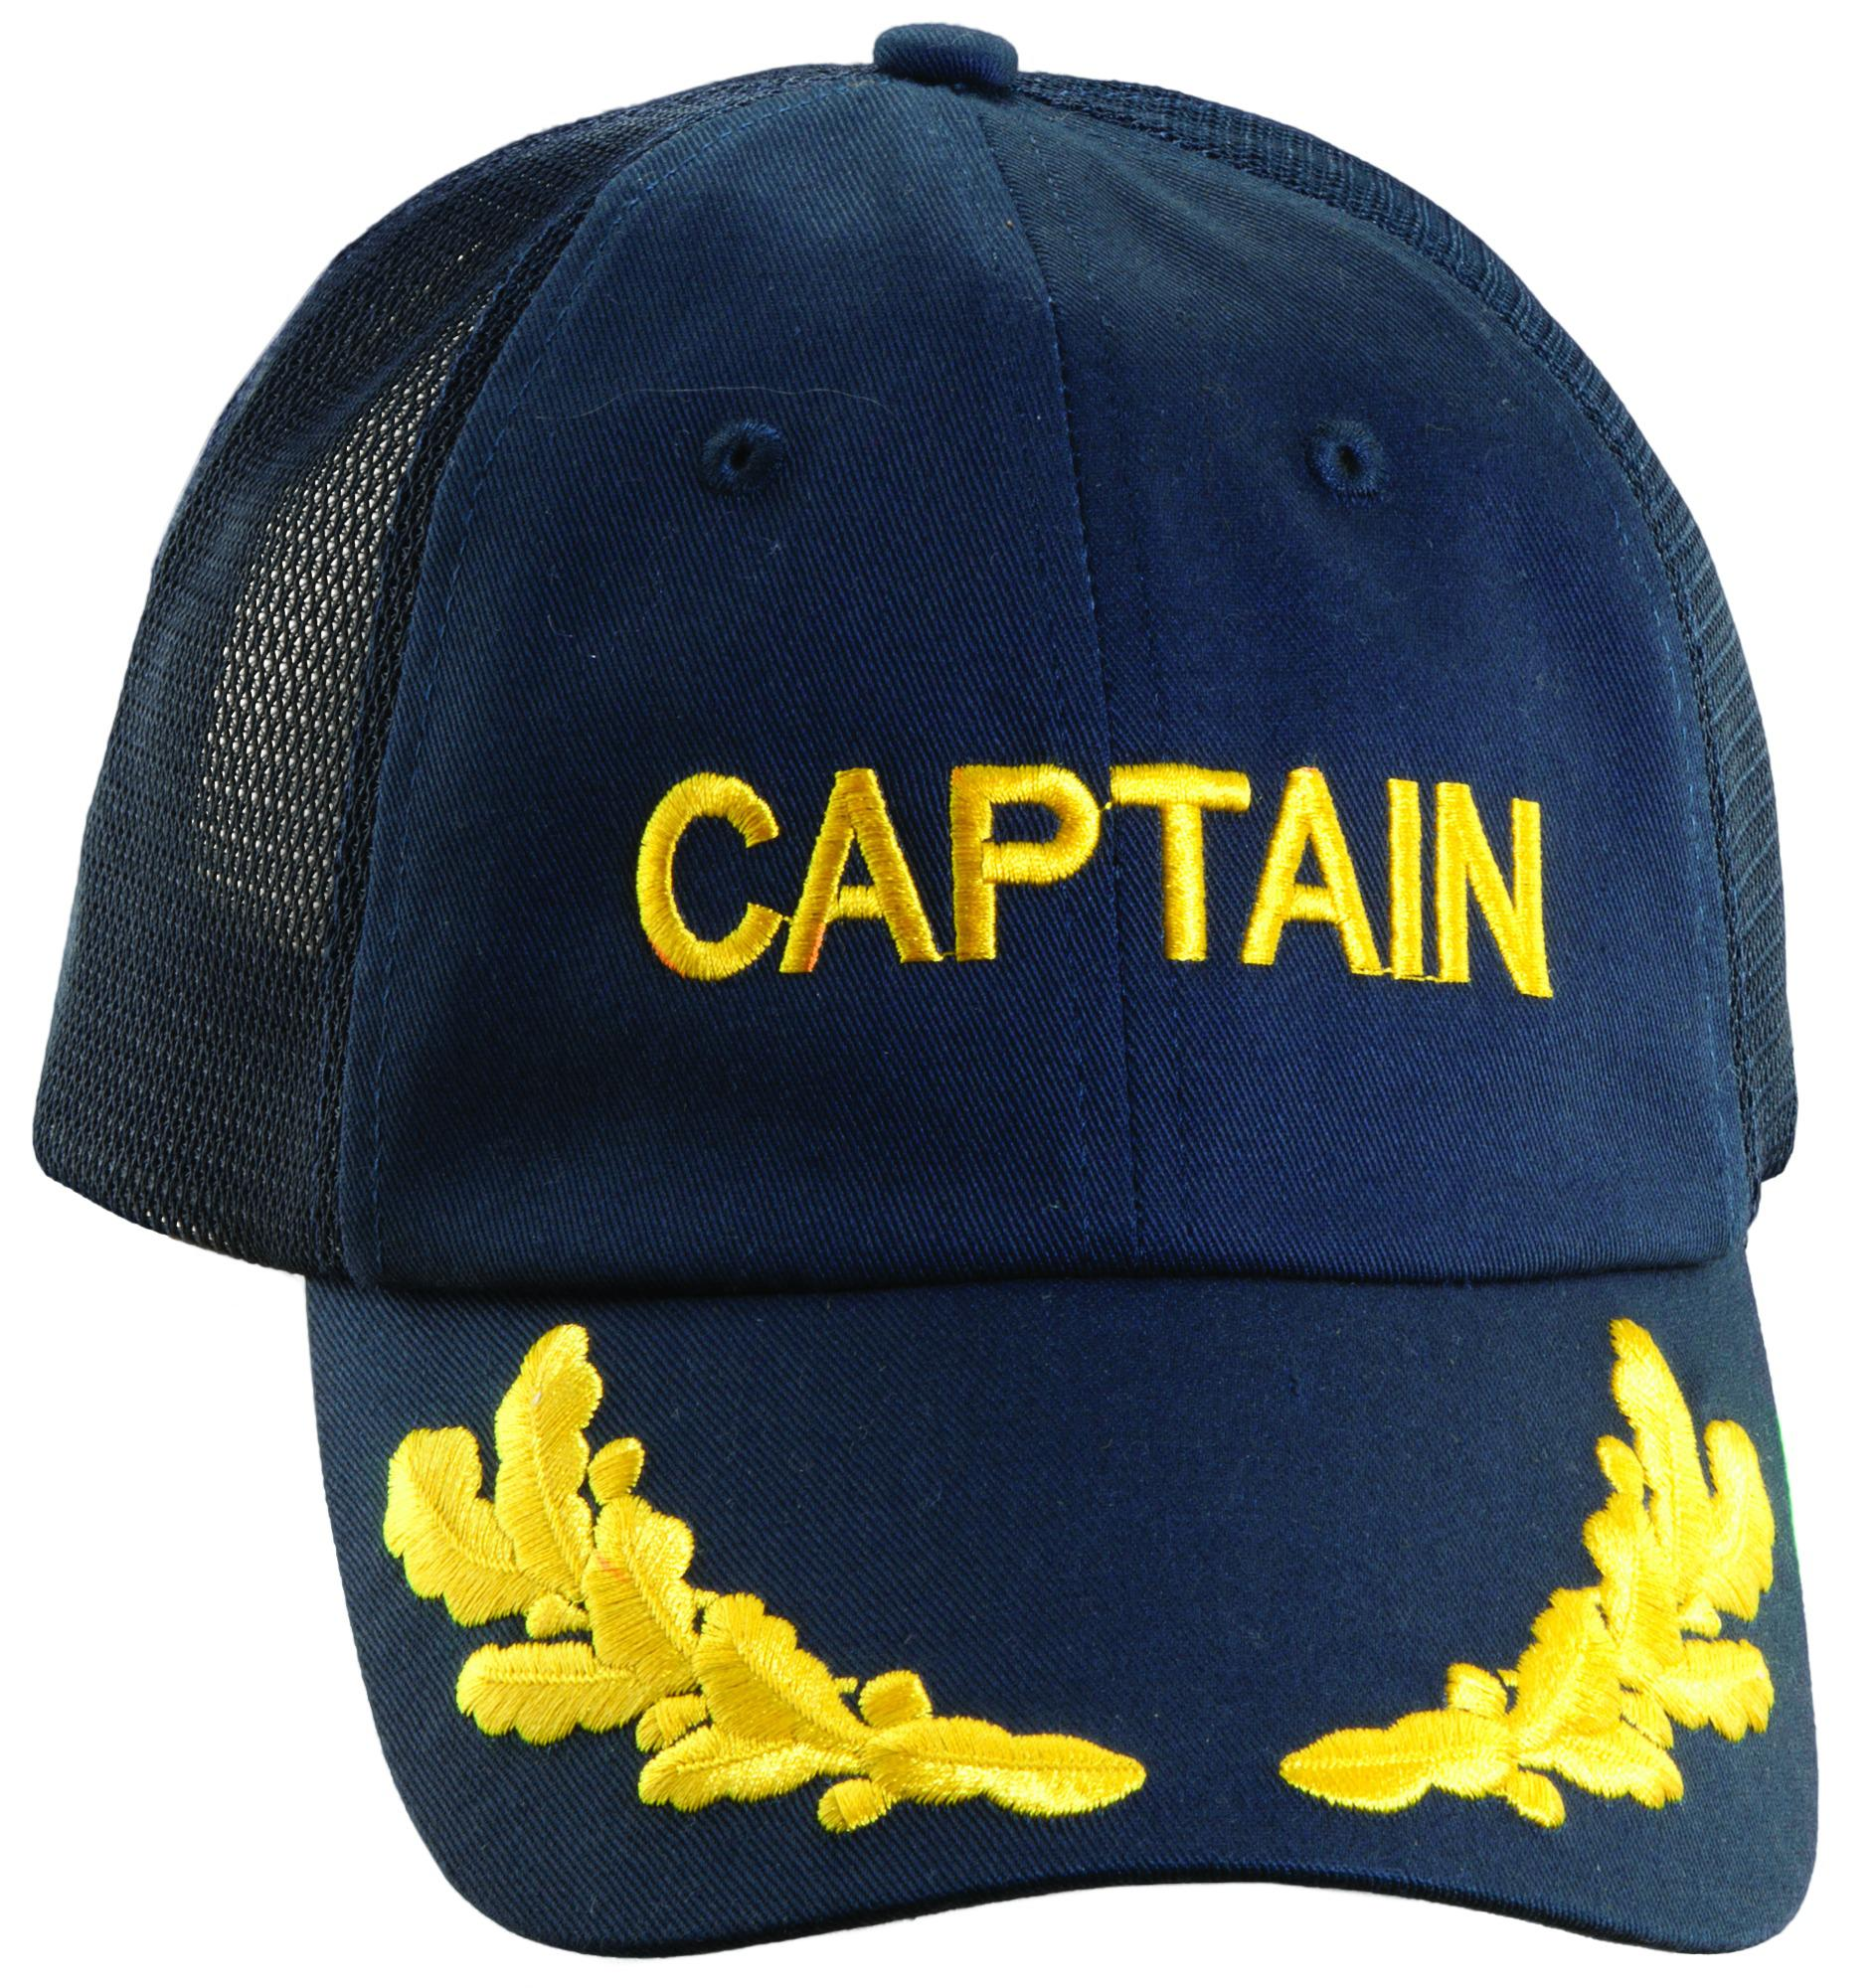 Dorfman_Pacific_Twill_Captain_Sailing_and_Nautical_Baseball_Cap_